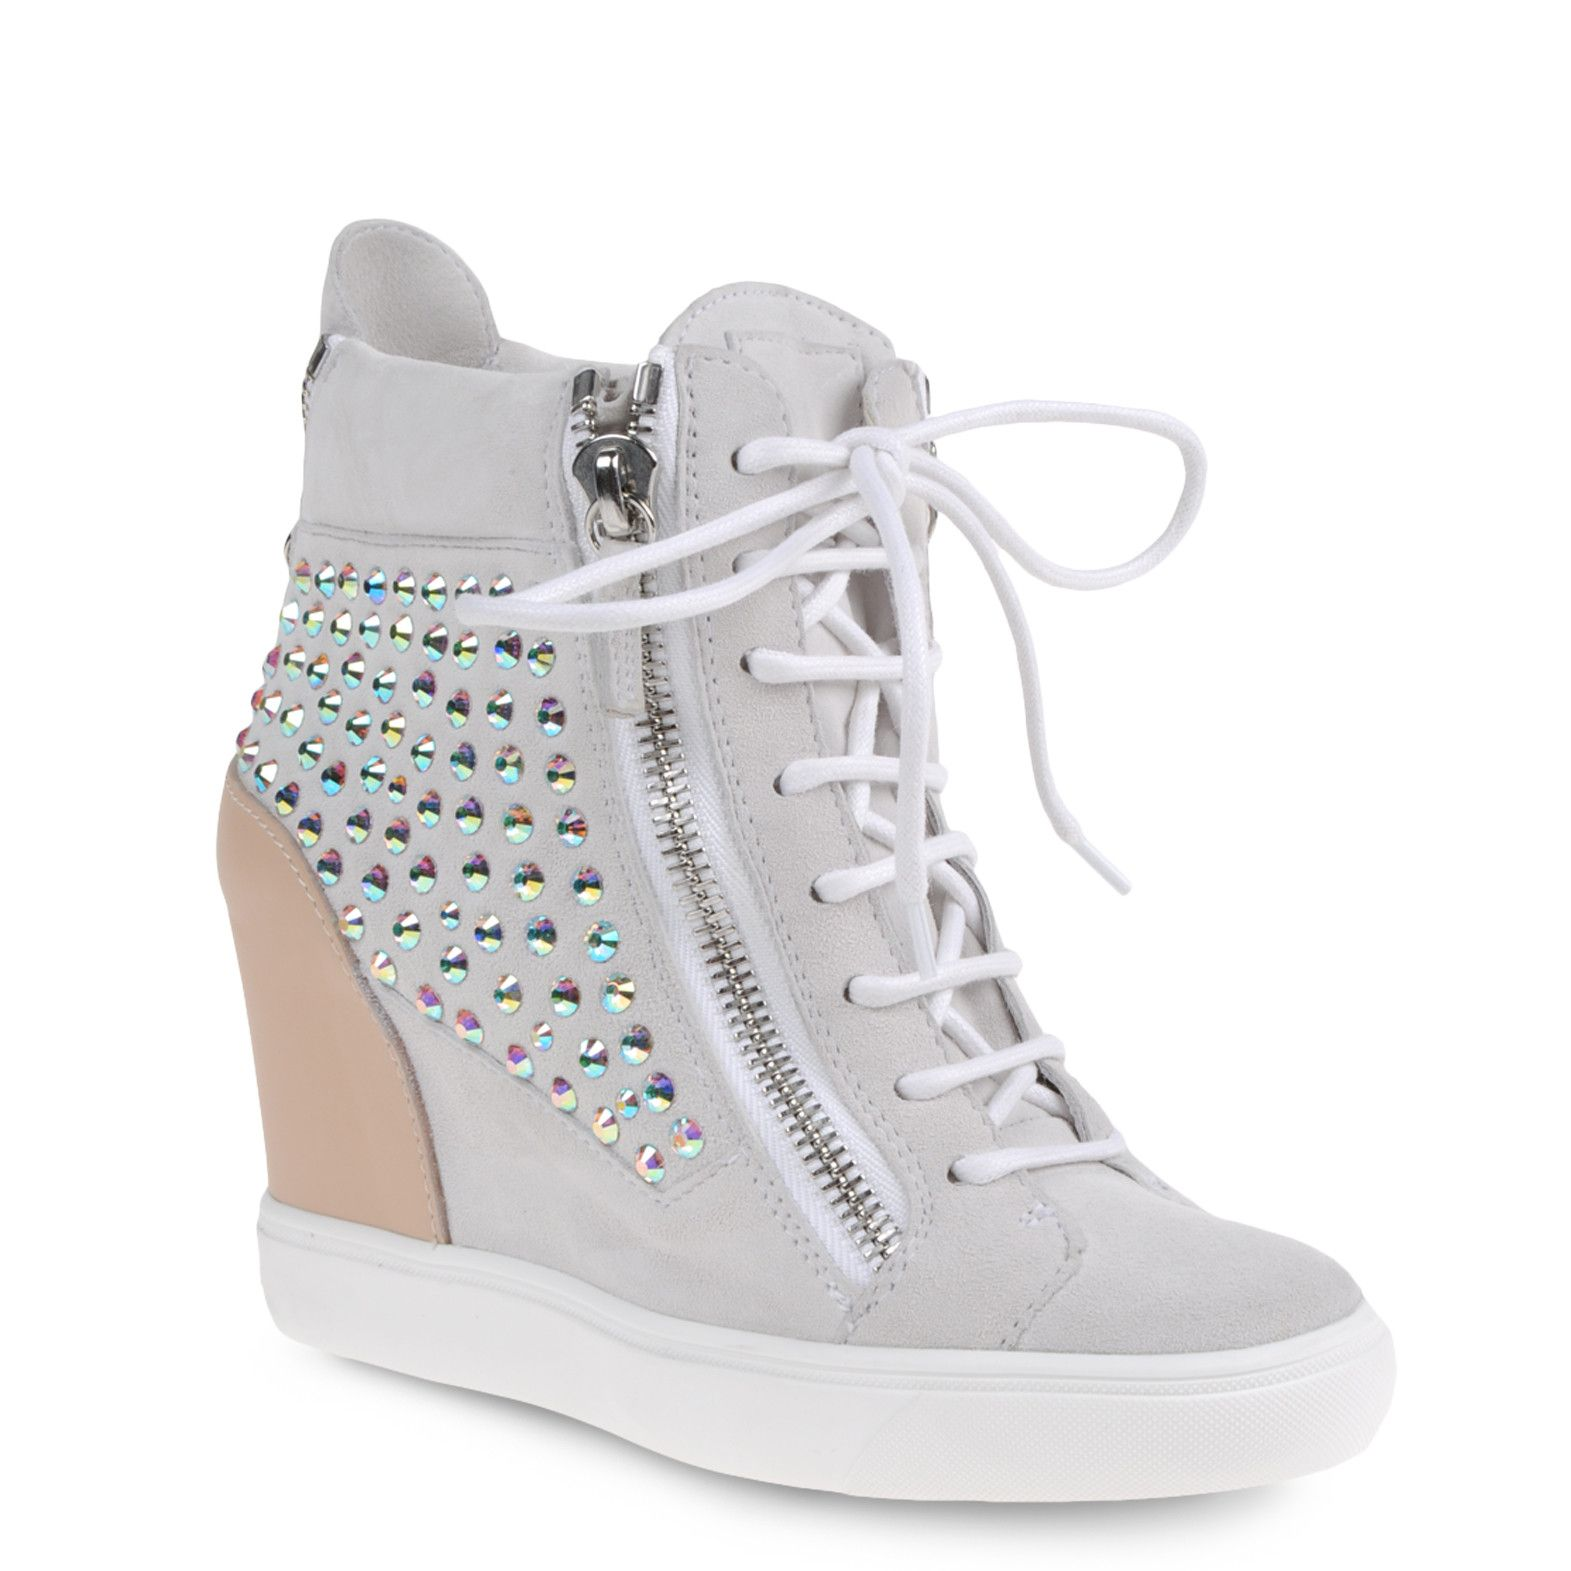 Giuseppe Zanotti High Top Sneakers for Women